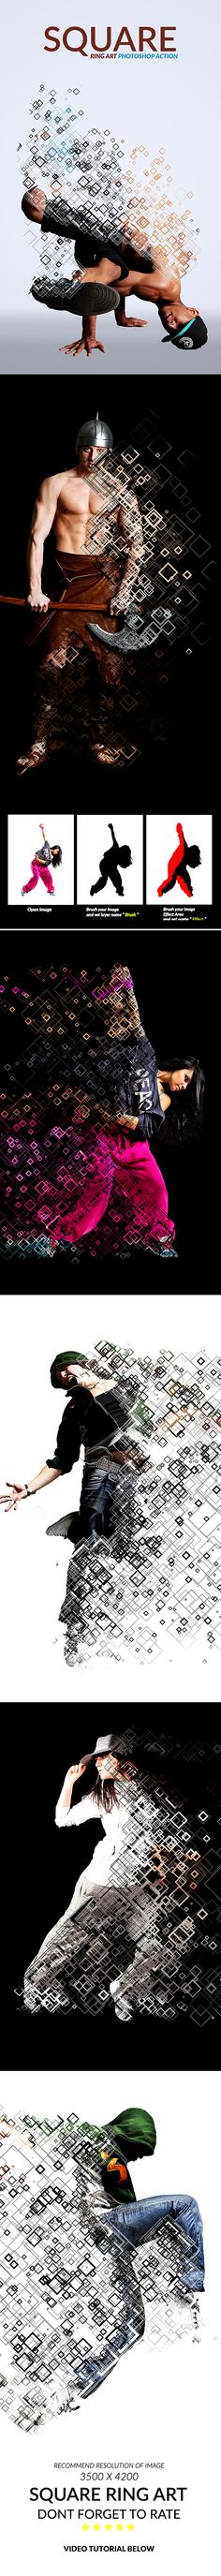 Square Ring Art Photoshop Action - Photo Effects Actions                                                                                                                                                                                 Mais